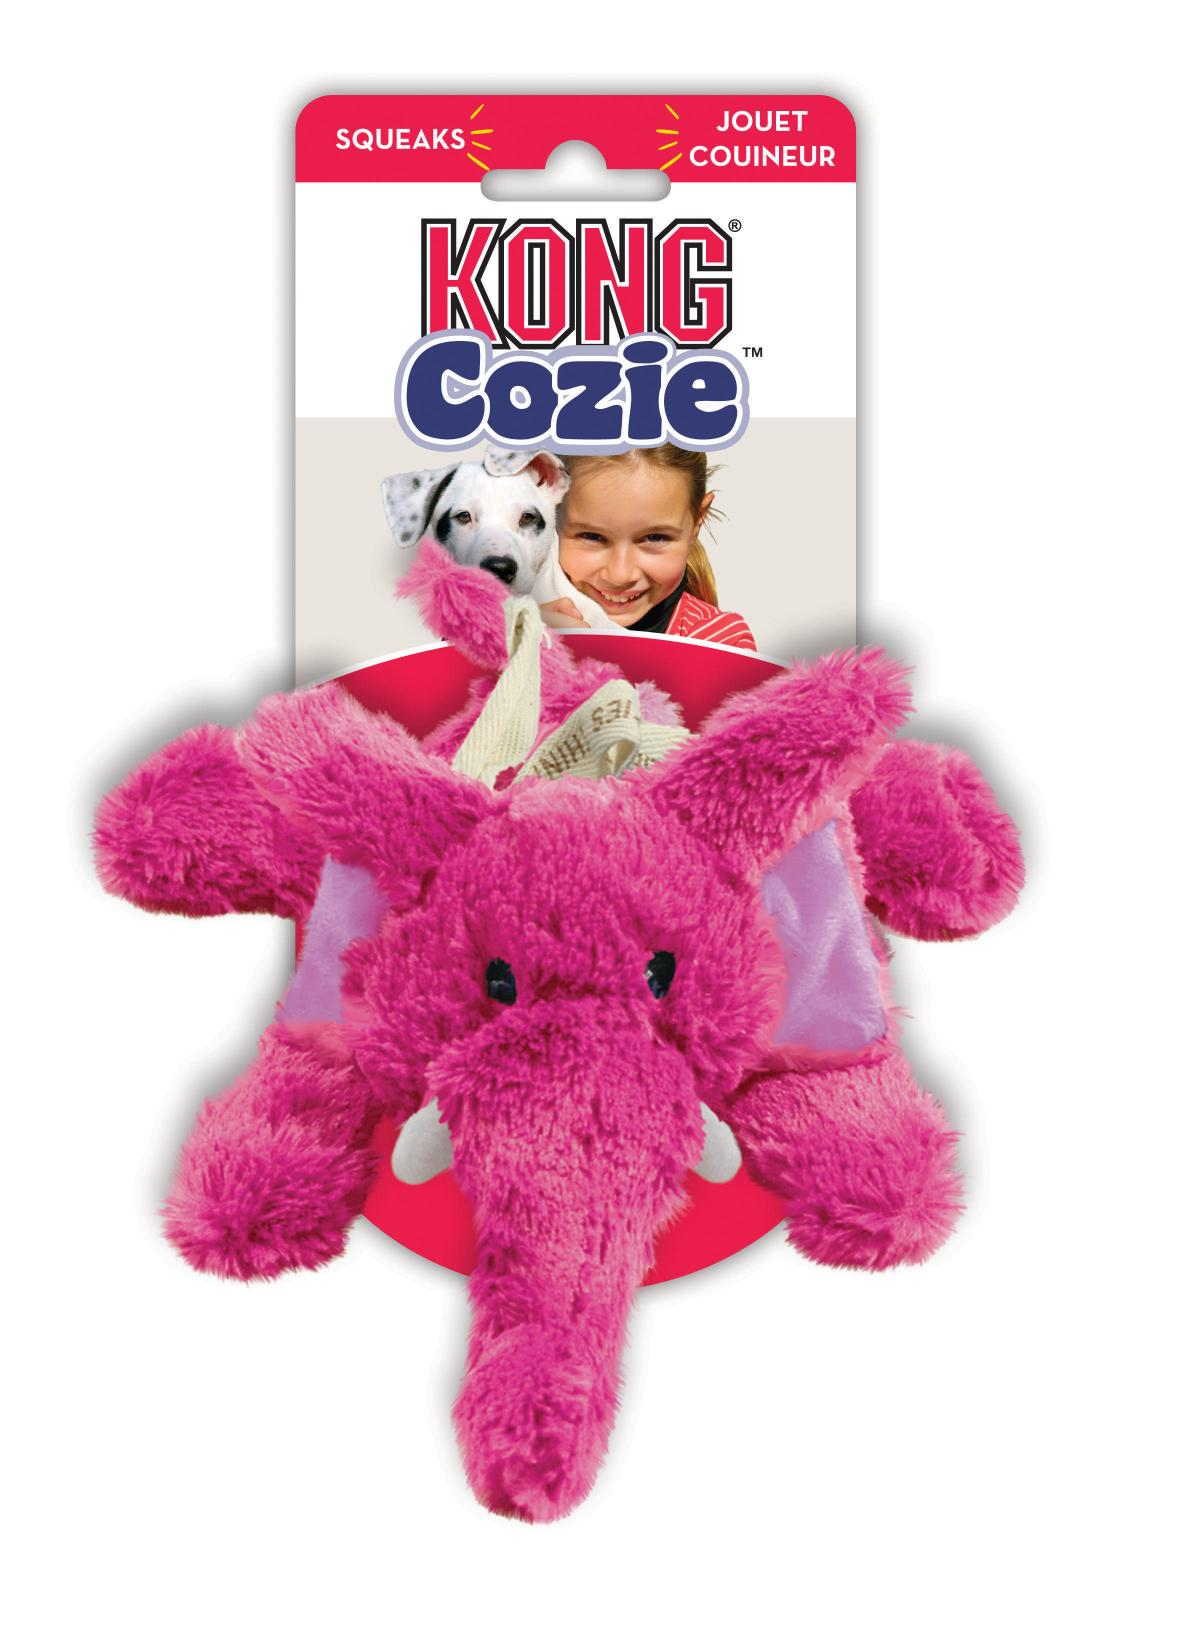 KONG Cozie Elmer Elephant - Small | Positive Dog Products | Adelaide